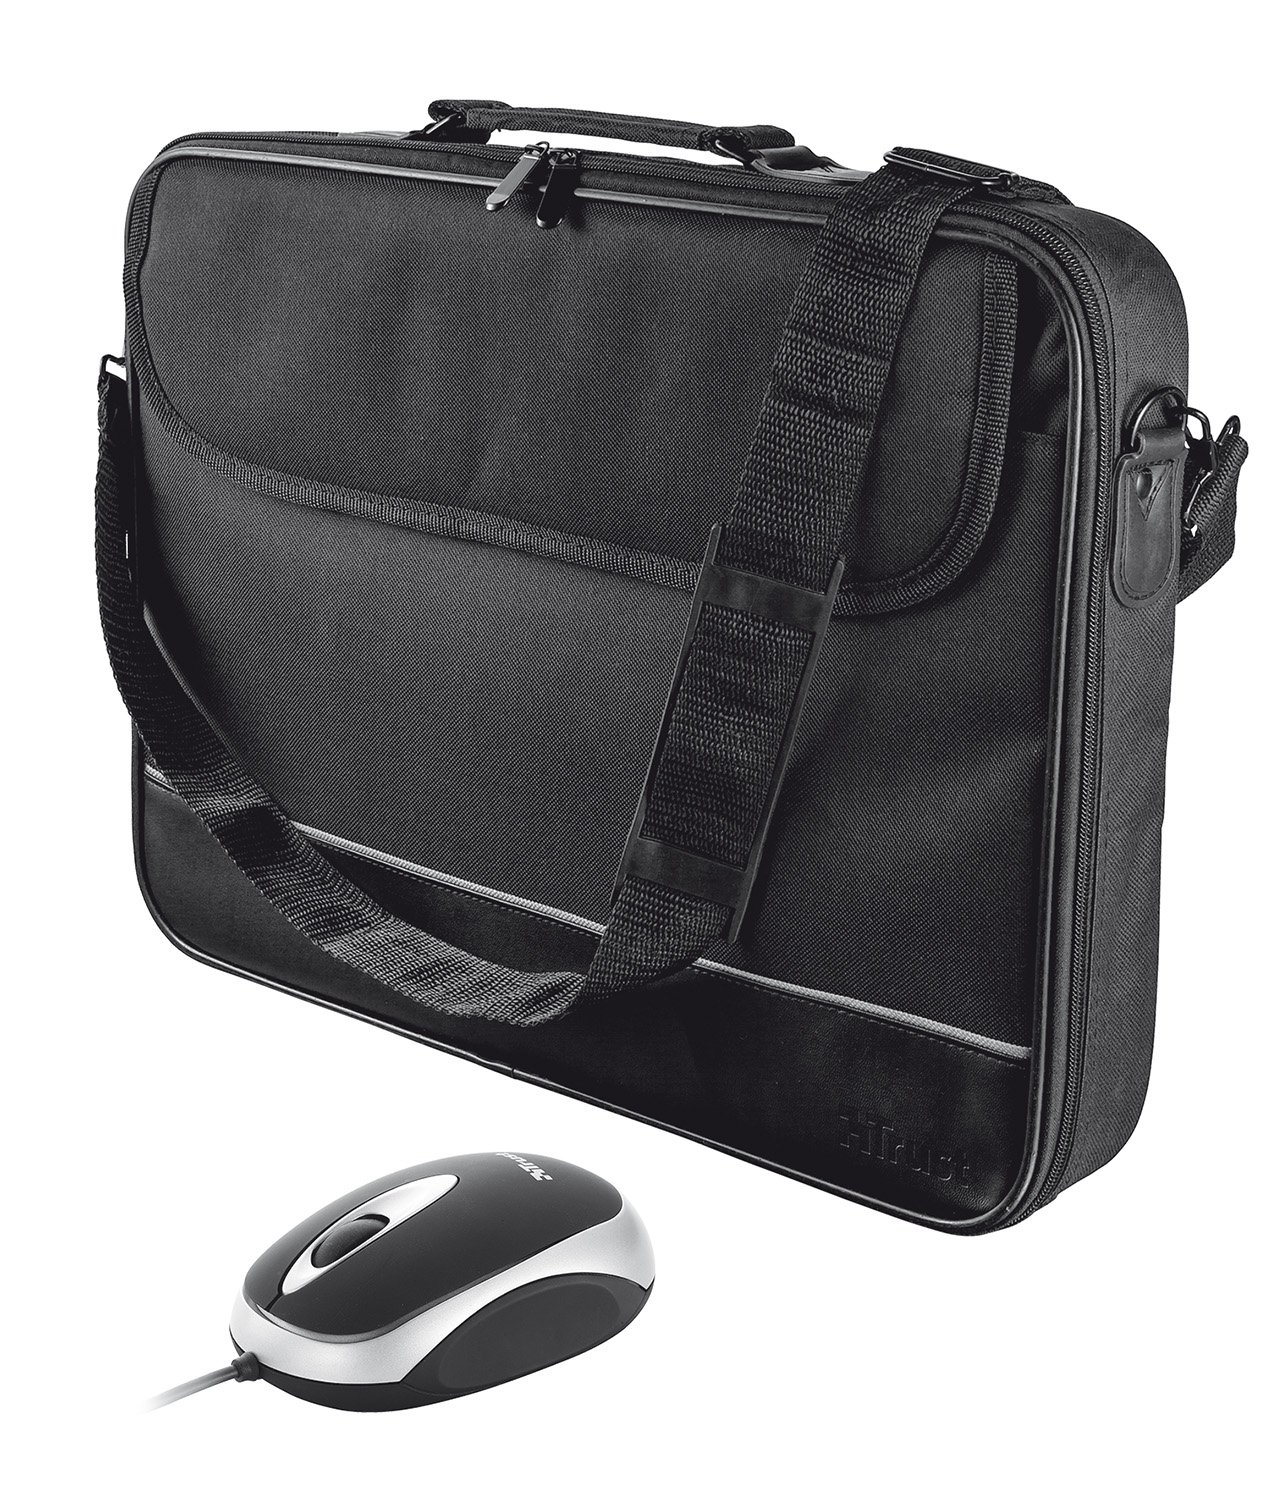 Trust 18902 Borsa per Notebook da 15-16 Pollici con Mouse, Colore Nero 16 custodia ottico pc